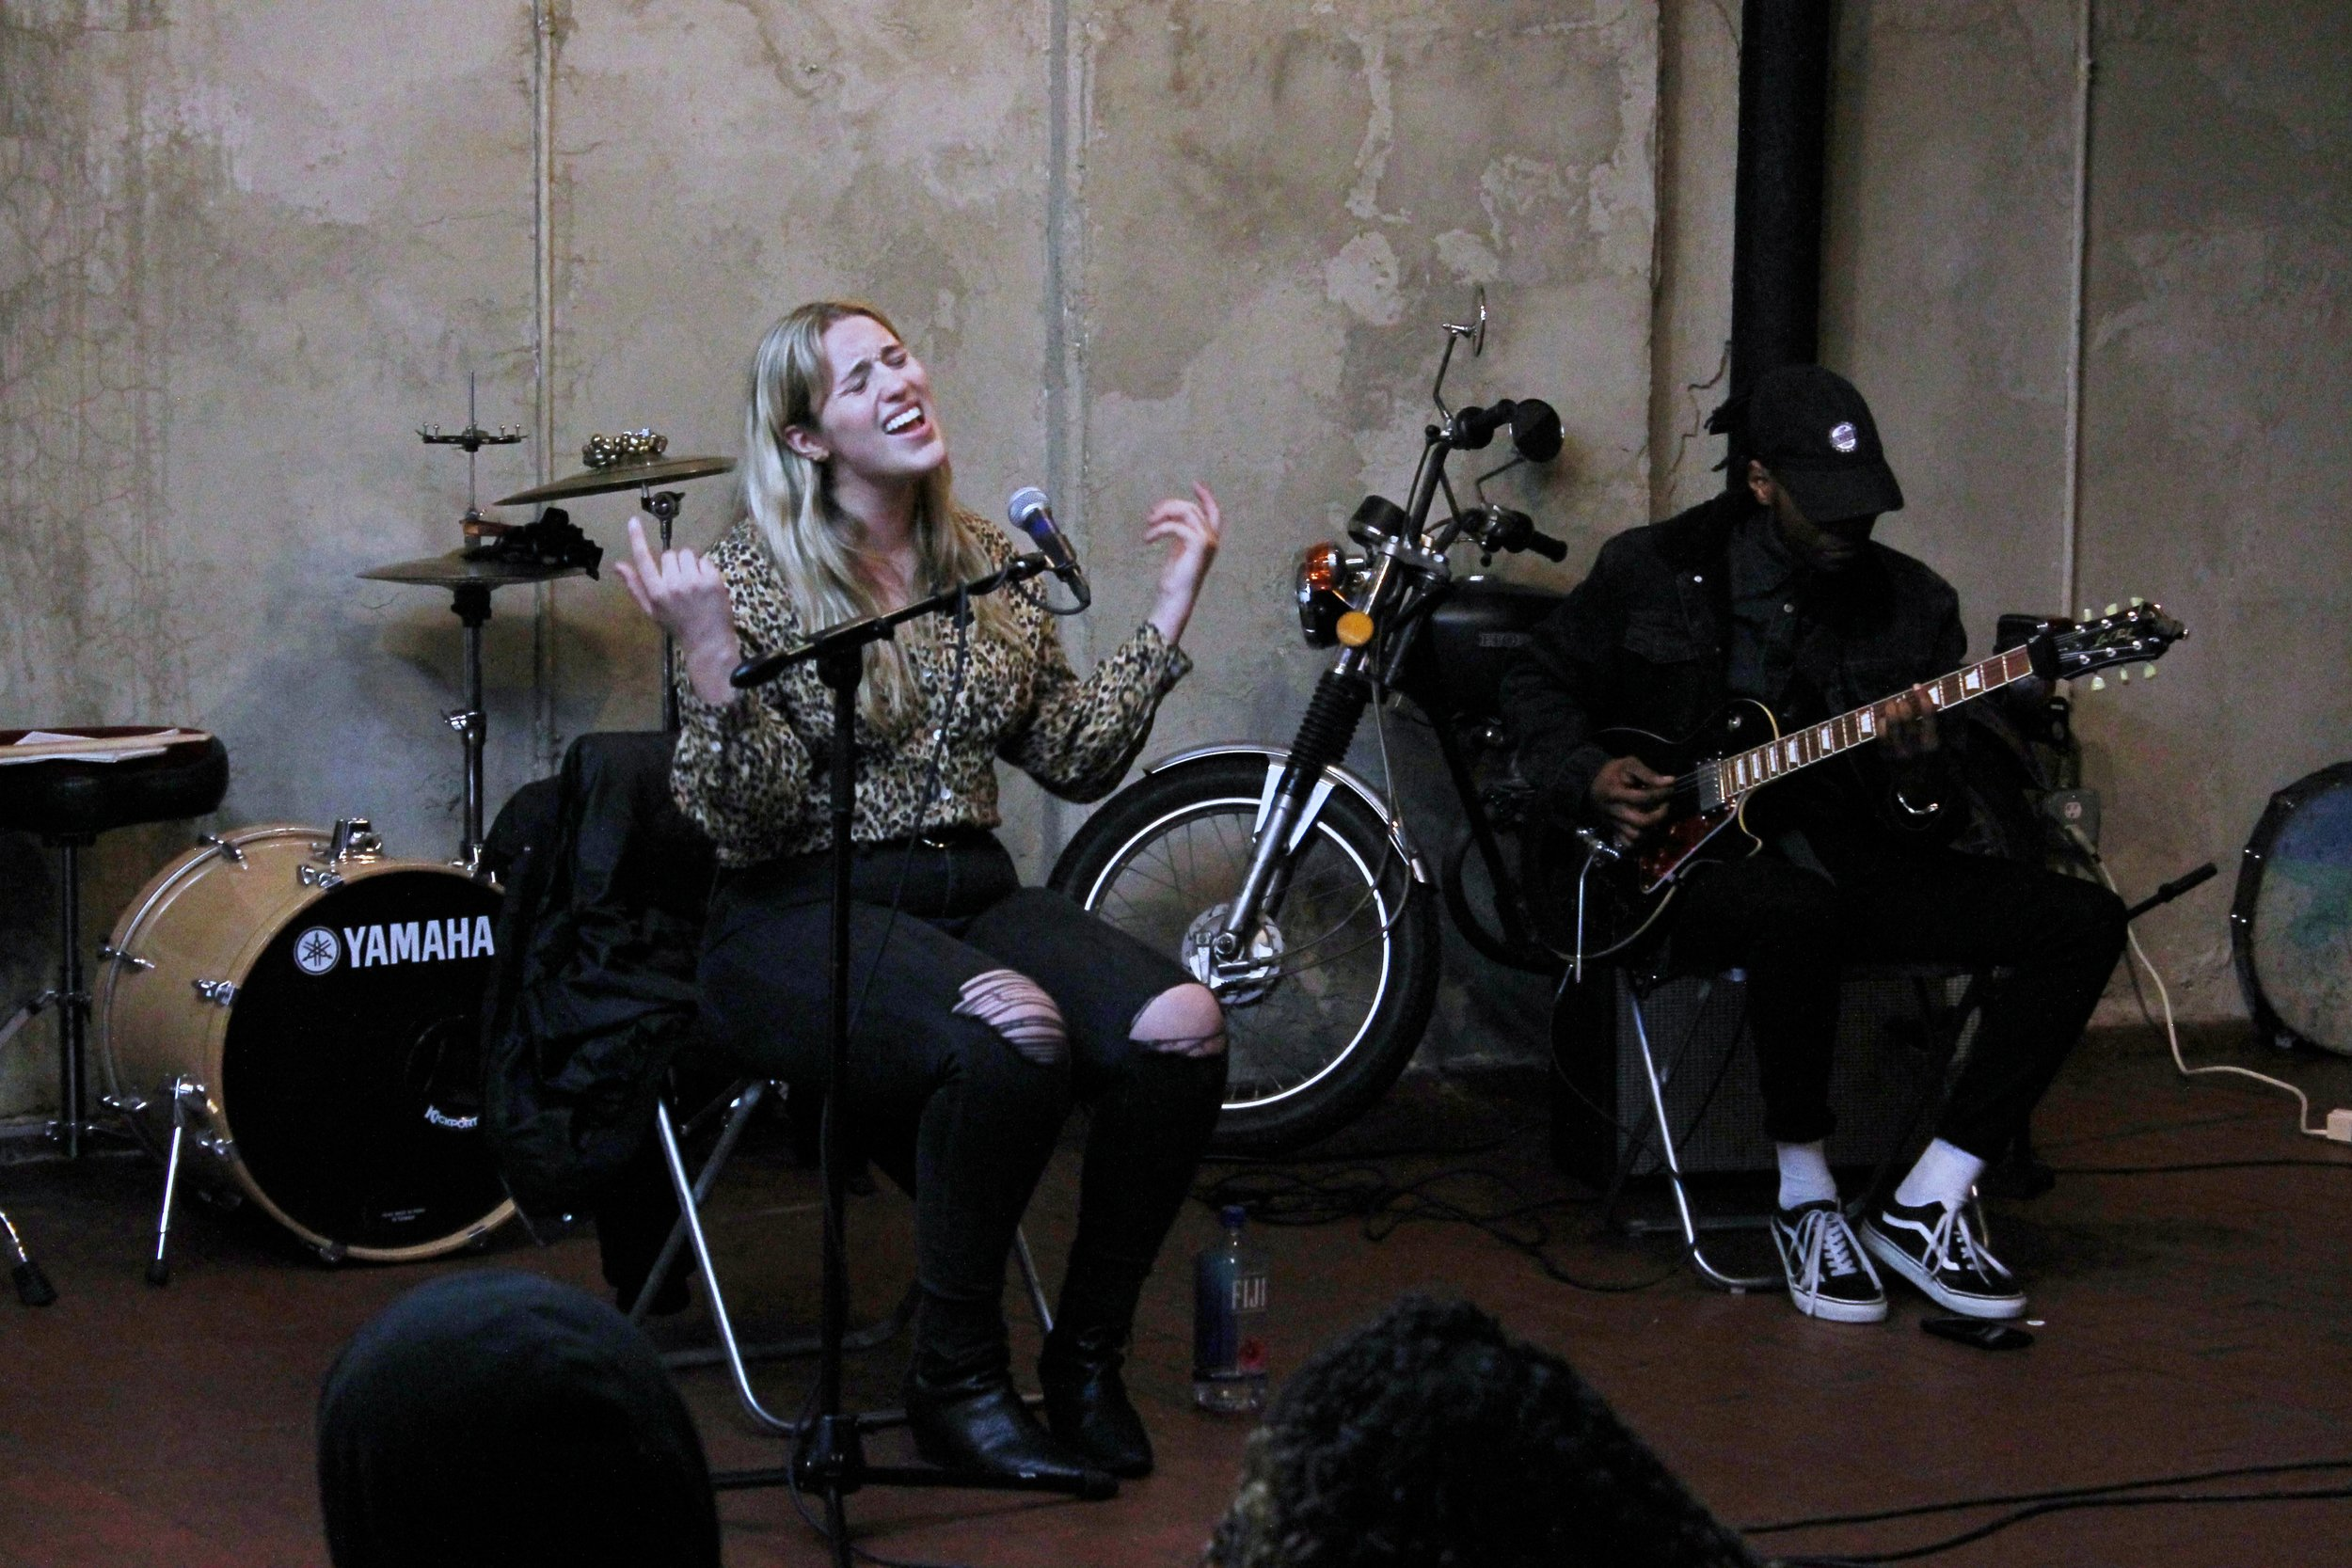 Sydney performing alongside her guitar player at a SoFar Sounds show in Bushwick